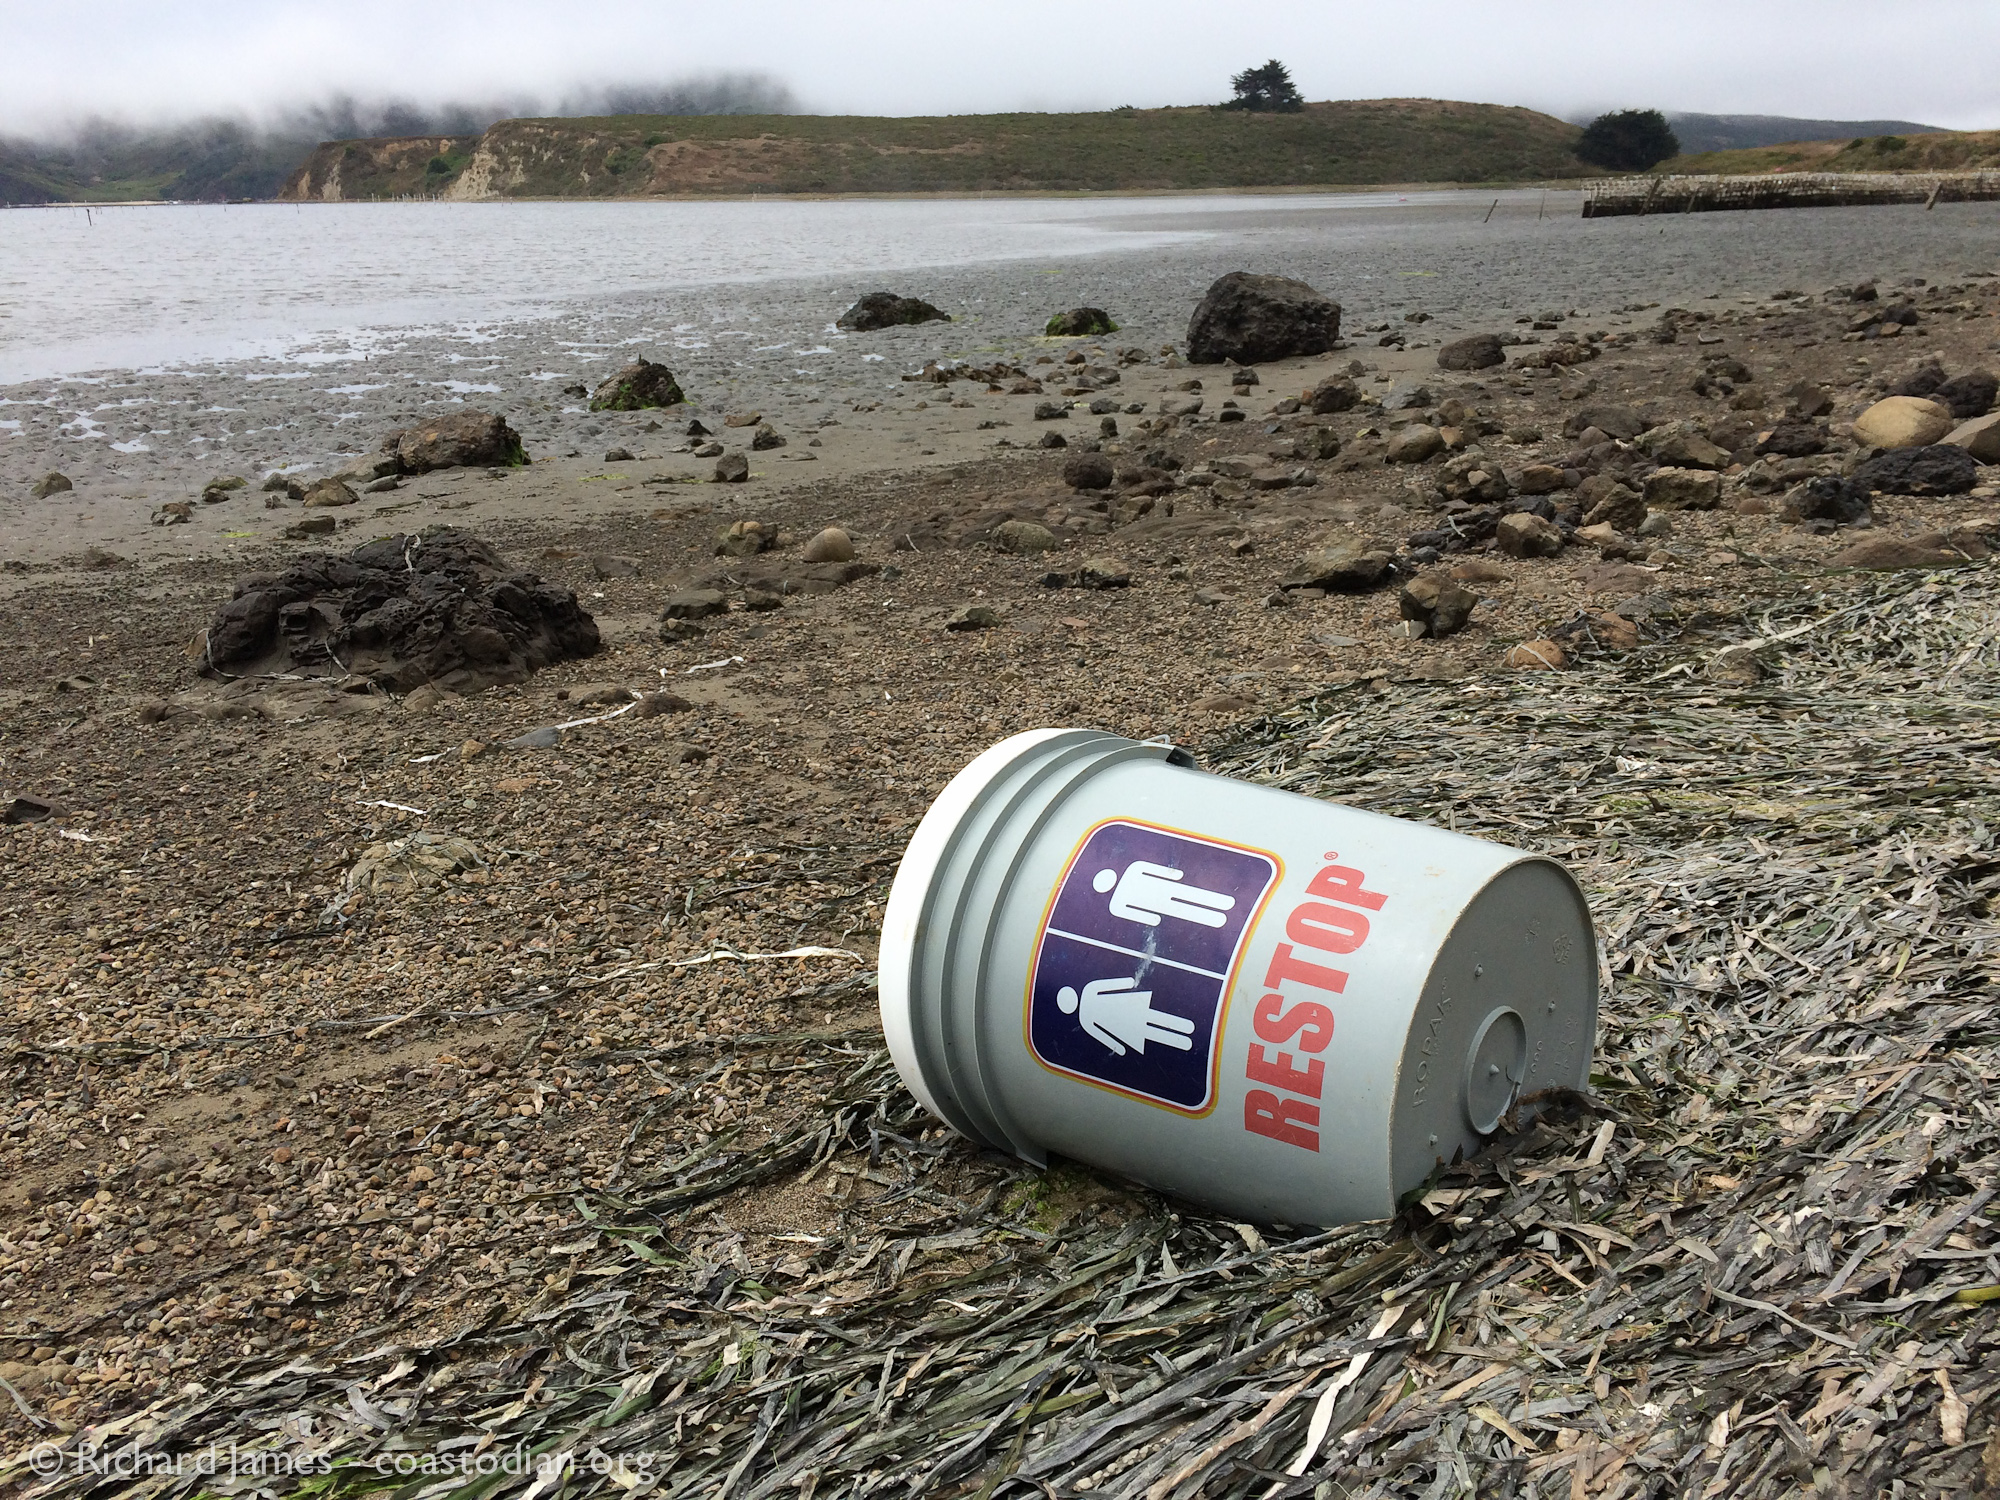 This 5-galloon bucket with seat and sack full of poo inside was found on the northeast shore of Tomales Bay, not far from oyster beds on August, 2016